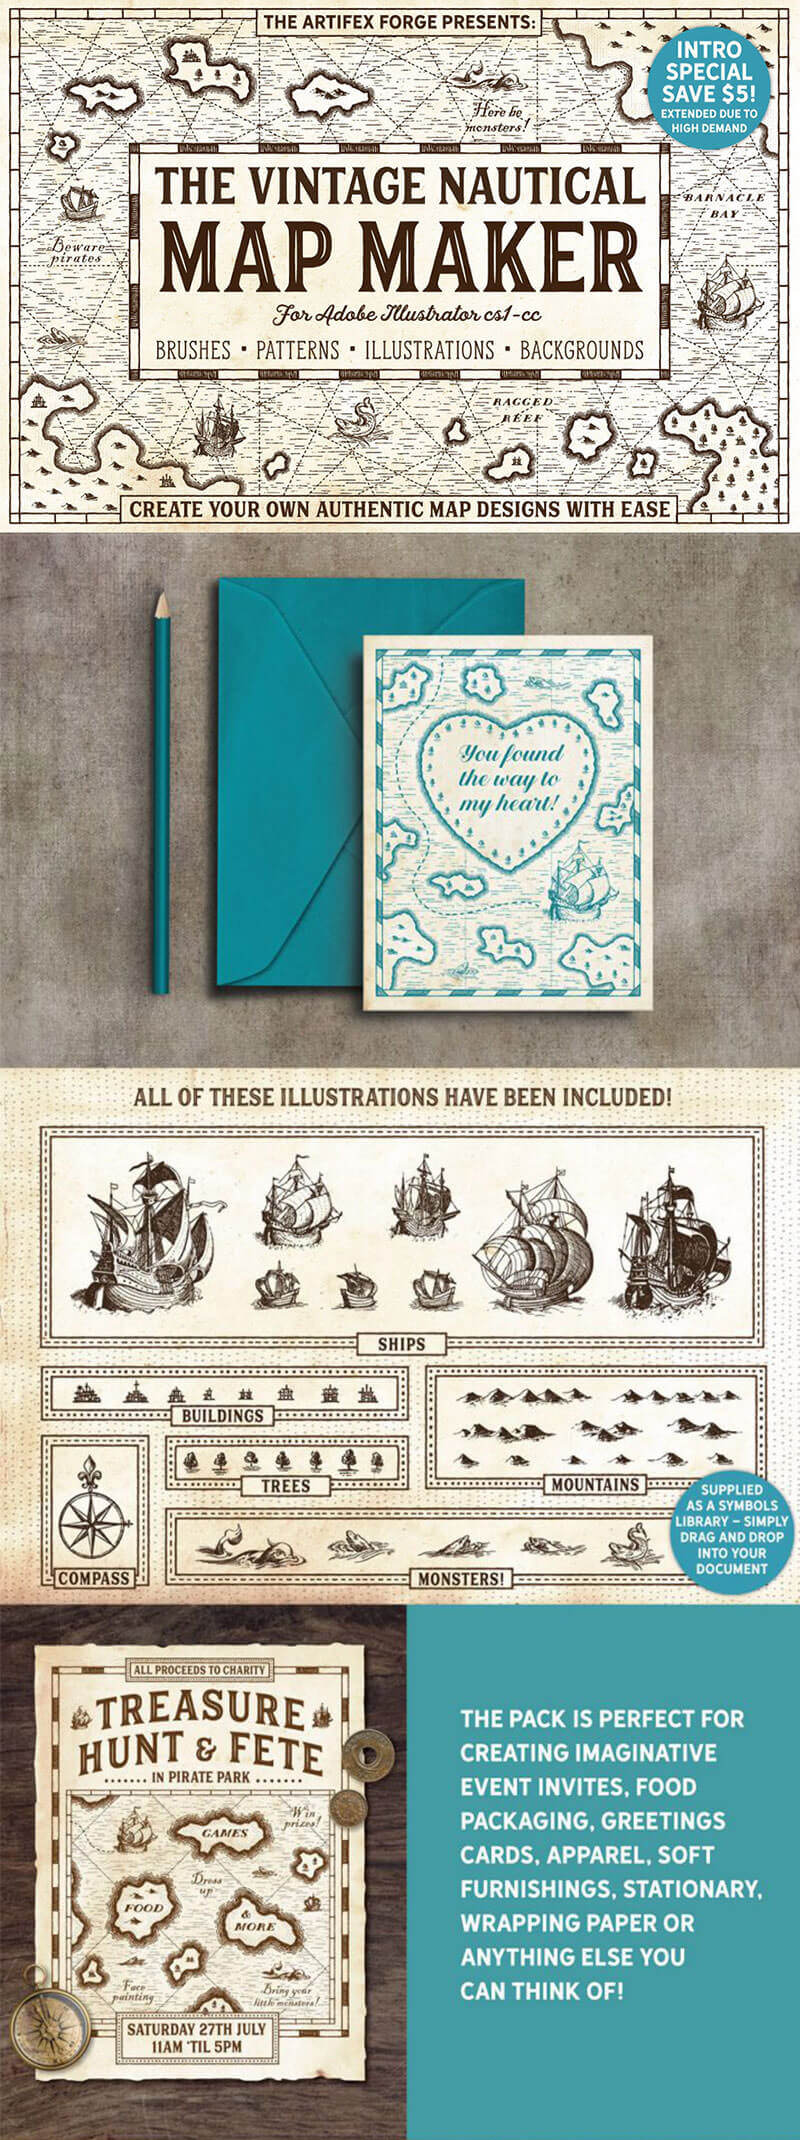 vintage-nautical-map-maker-main